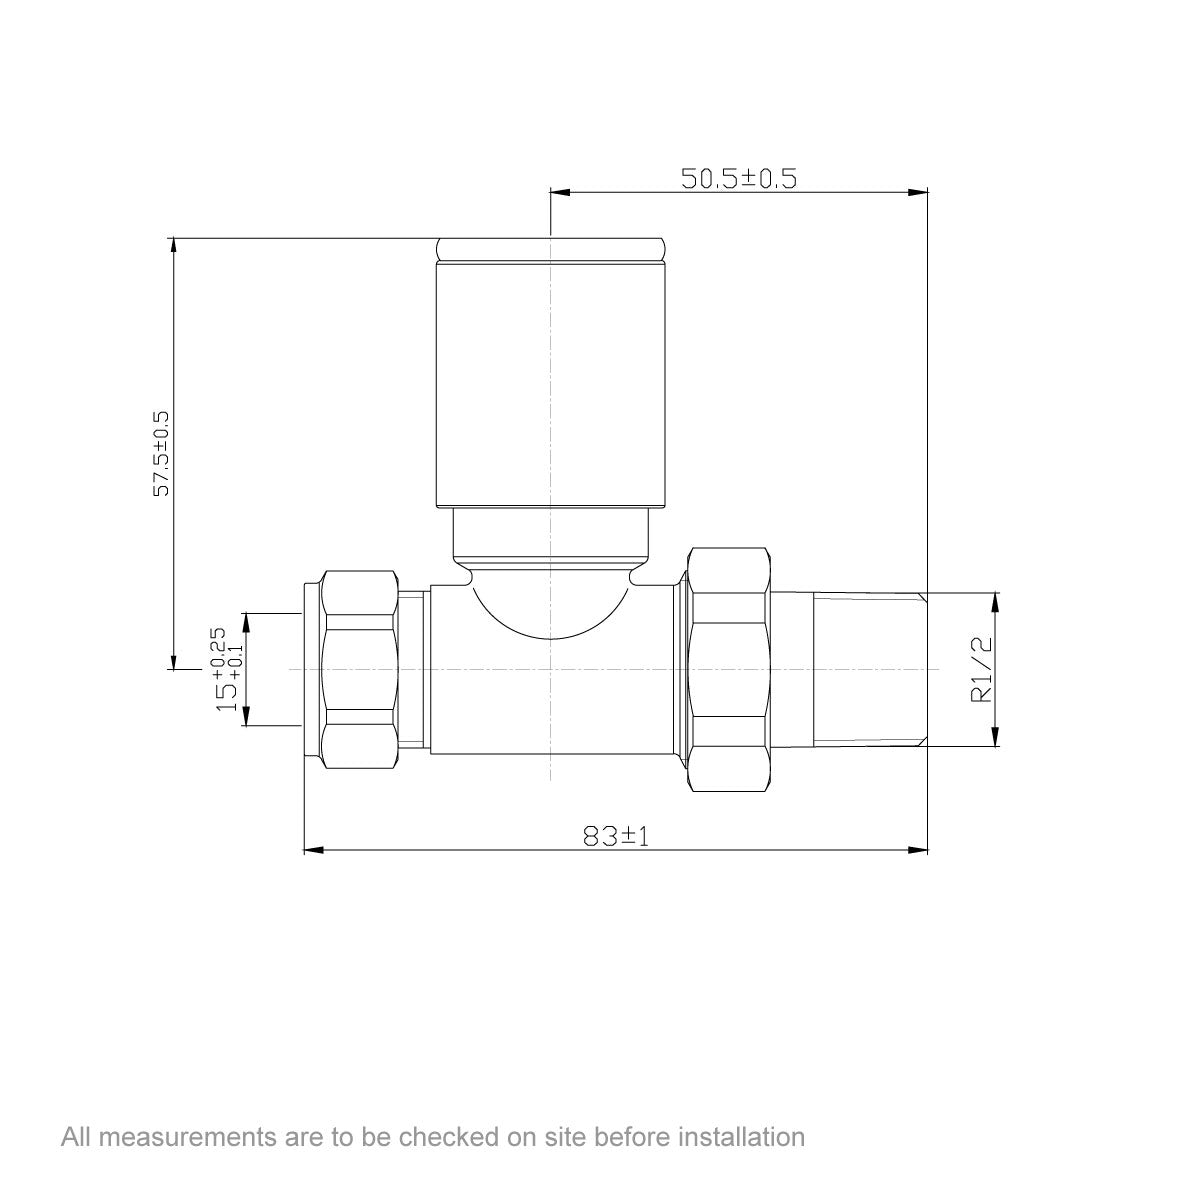 Dimensions for Orchard straight anthracite radiator valve